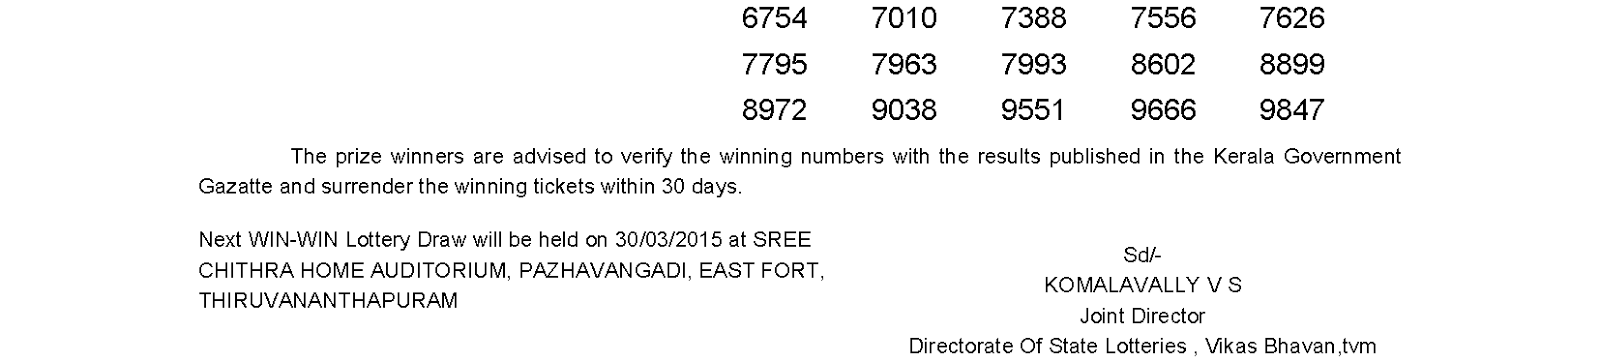 WIN-WIN Lottery W 300 Result 23-3-2015